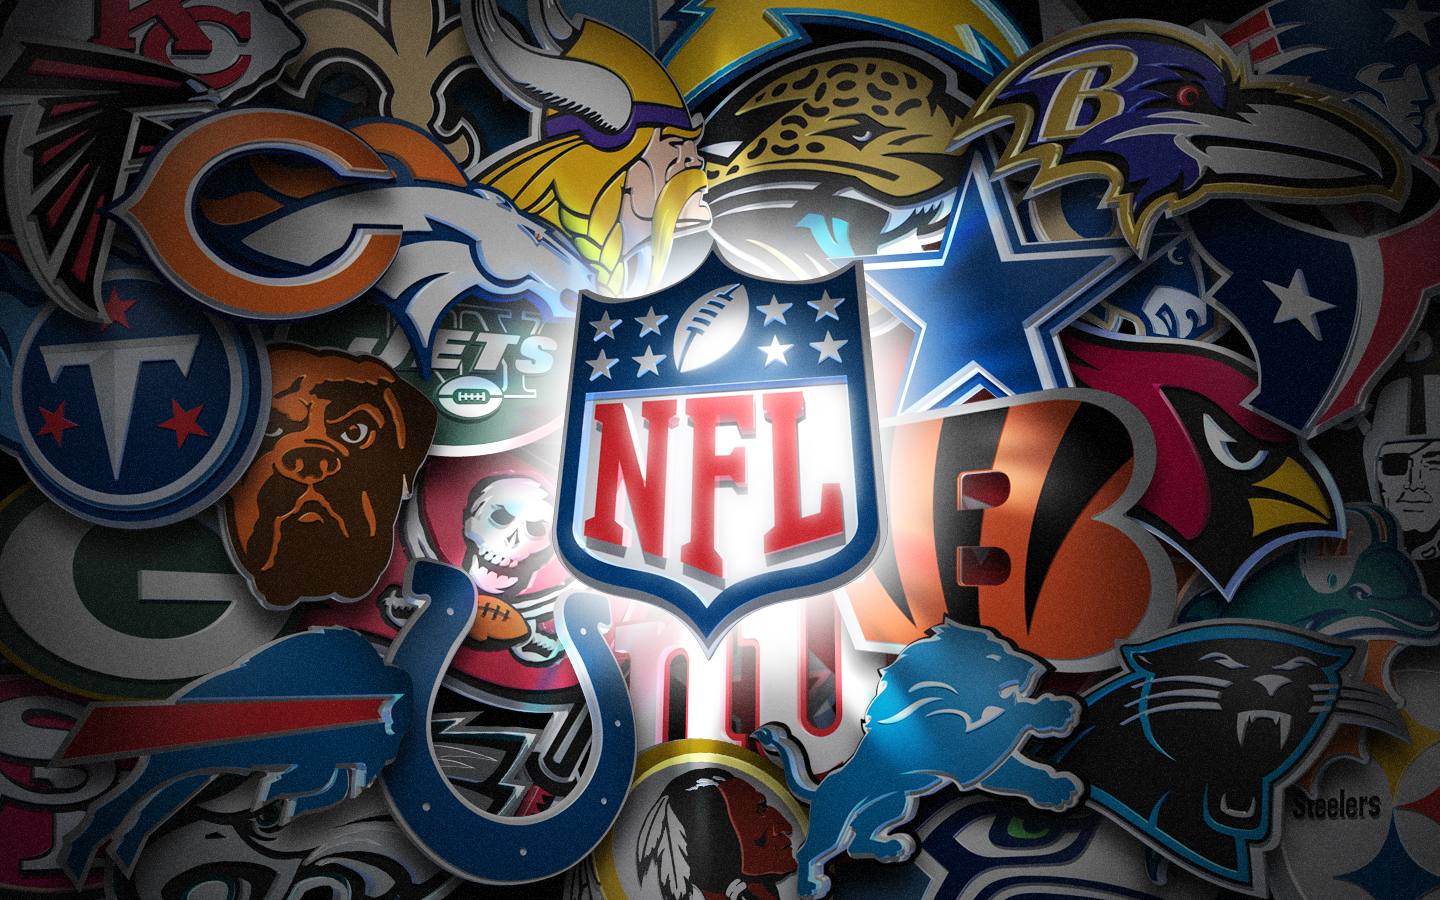 ALL-NFL